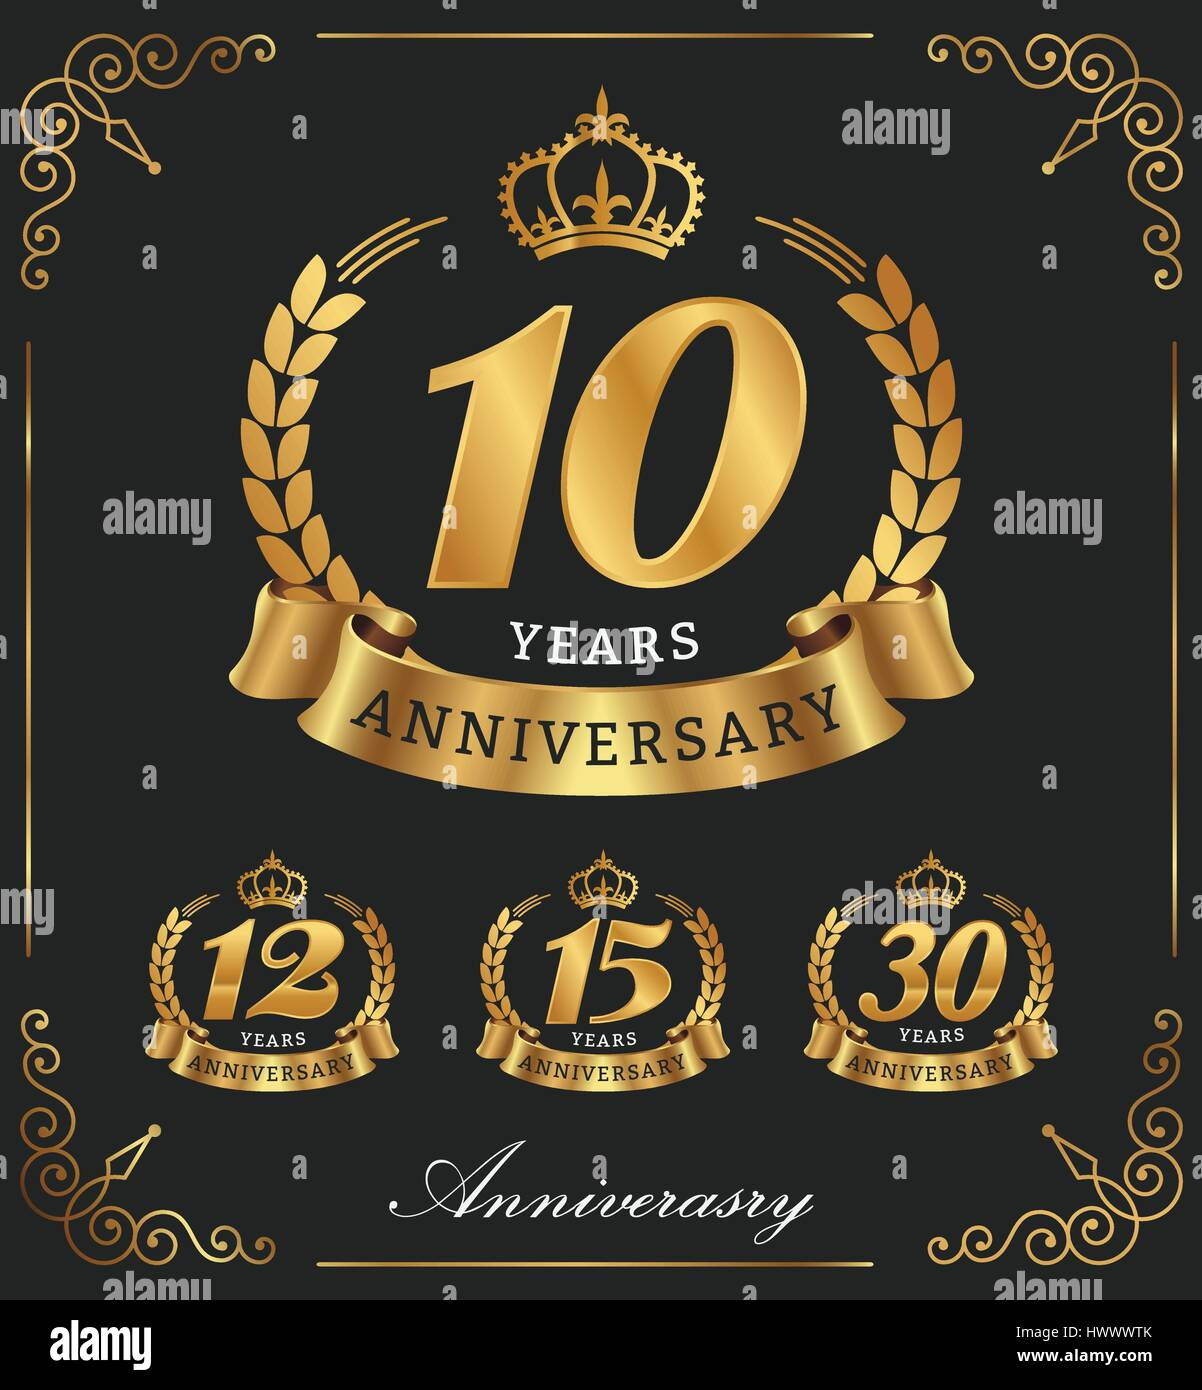 10 Years Anniversary decorative logo. Vector illustration - Stock Vector